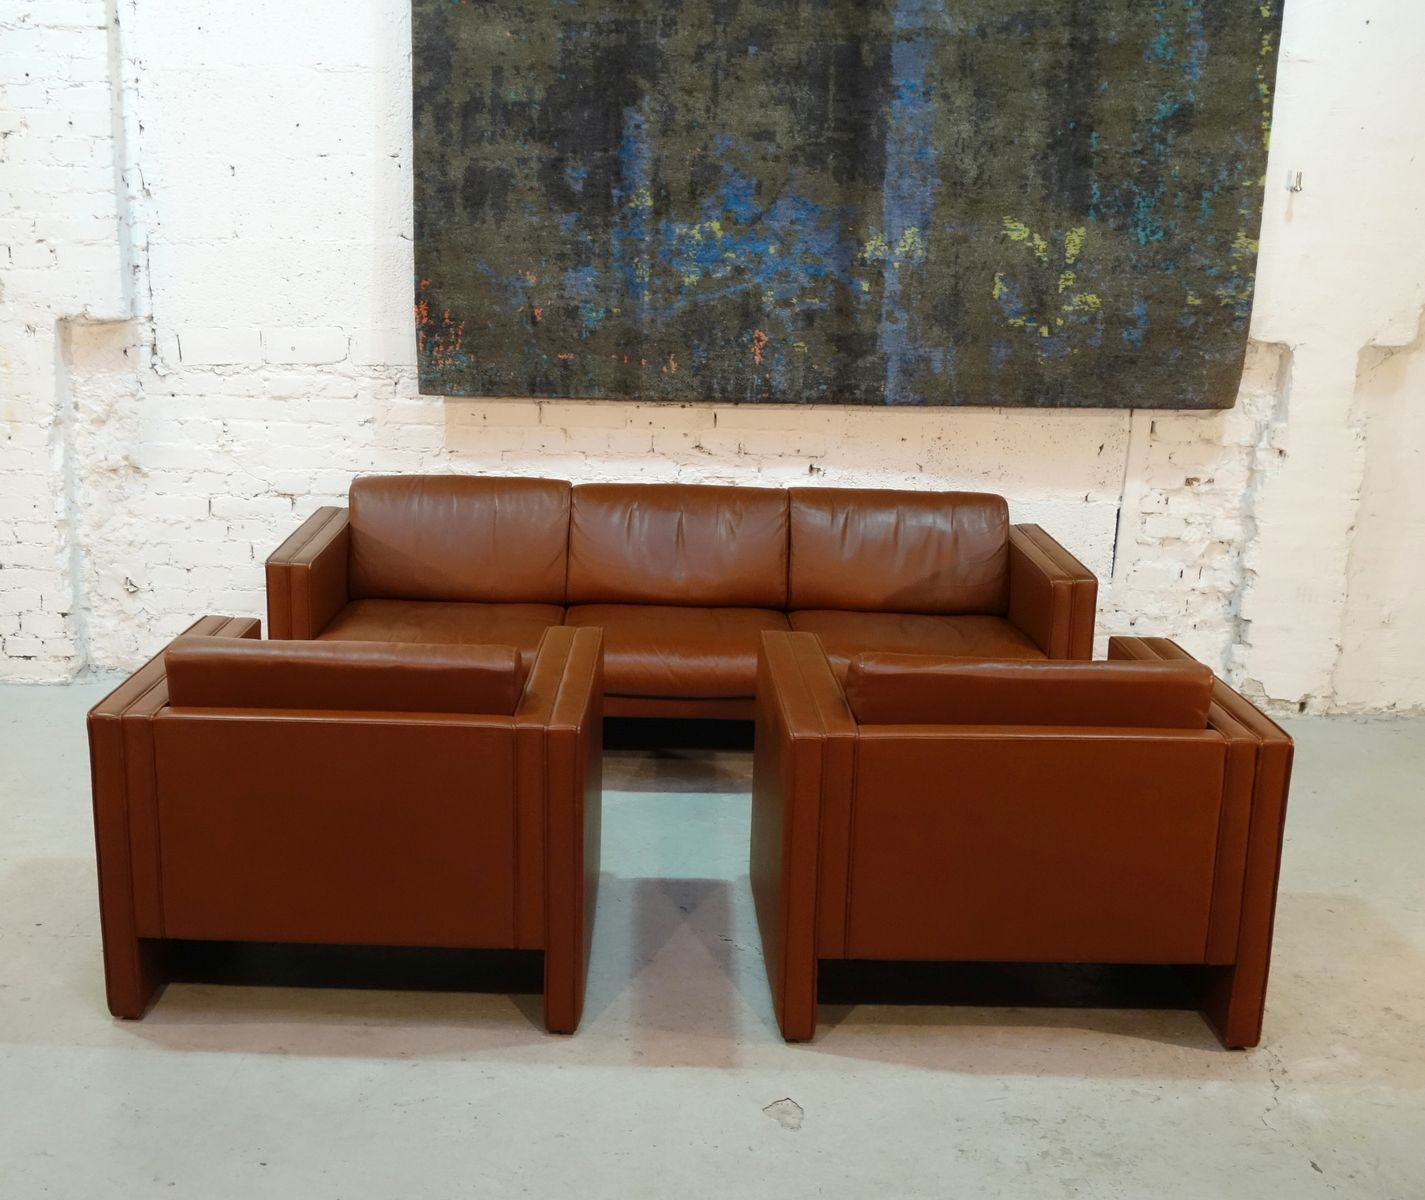 sofa mit zwei sesseln von walter knoll 1980er bei pamono kaufen. Black Bedroom Furniture Sets. Home Design Ideas